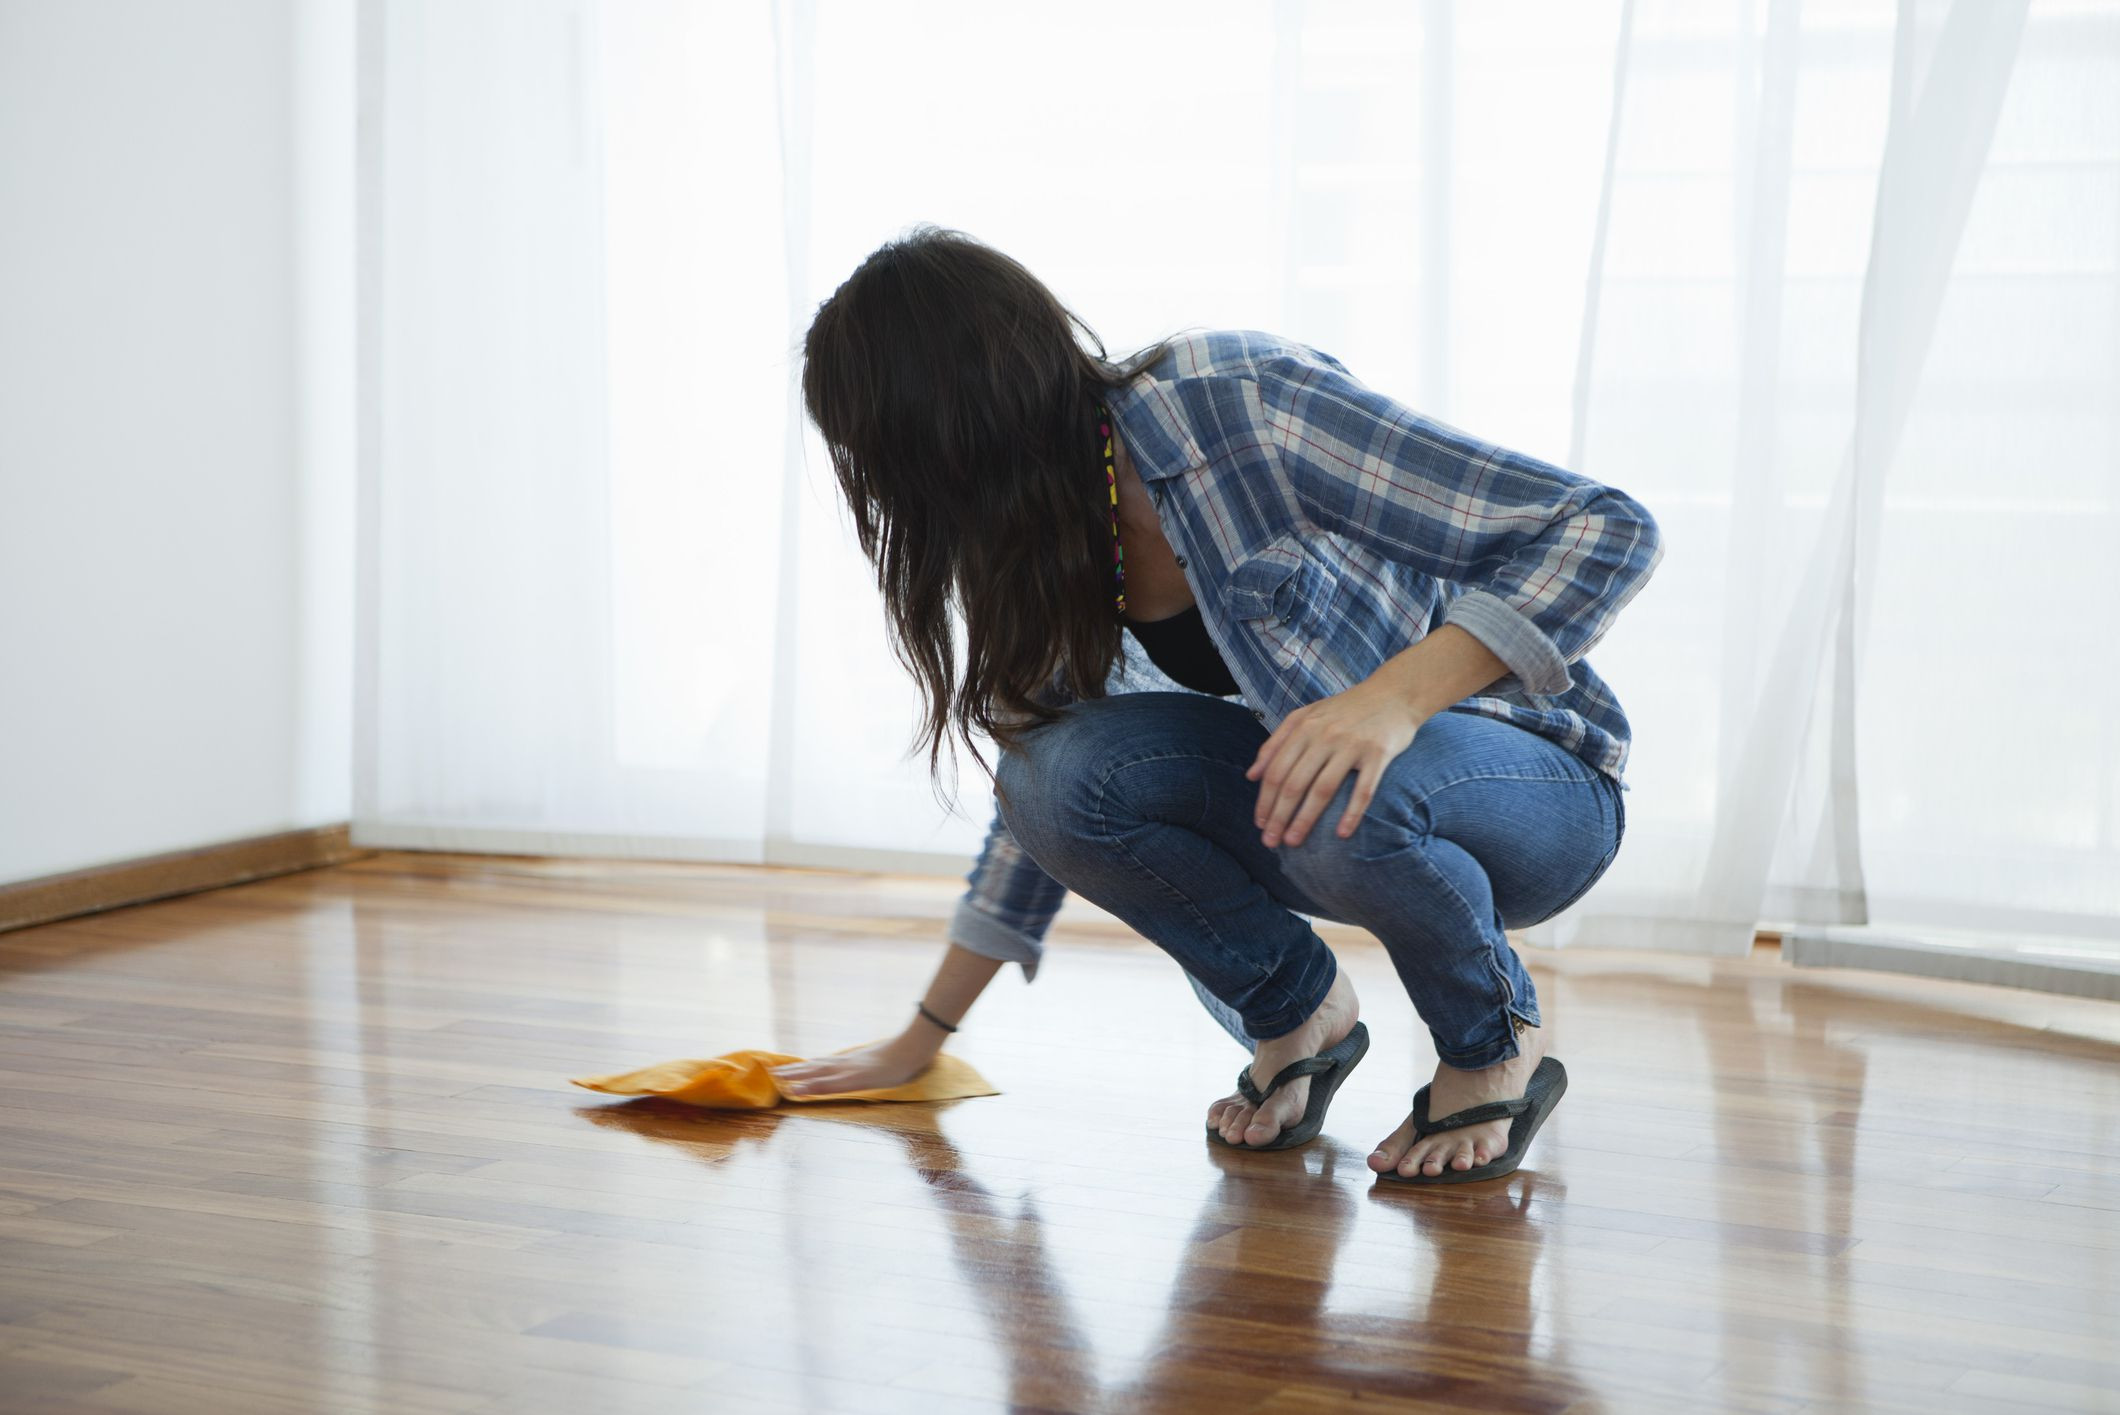 vinegar water ratio for cleaning hardwood floors of all about vinegar for green cleaning intended for gettyimages 149285782 59b954c7519de200110b7cc3